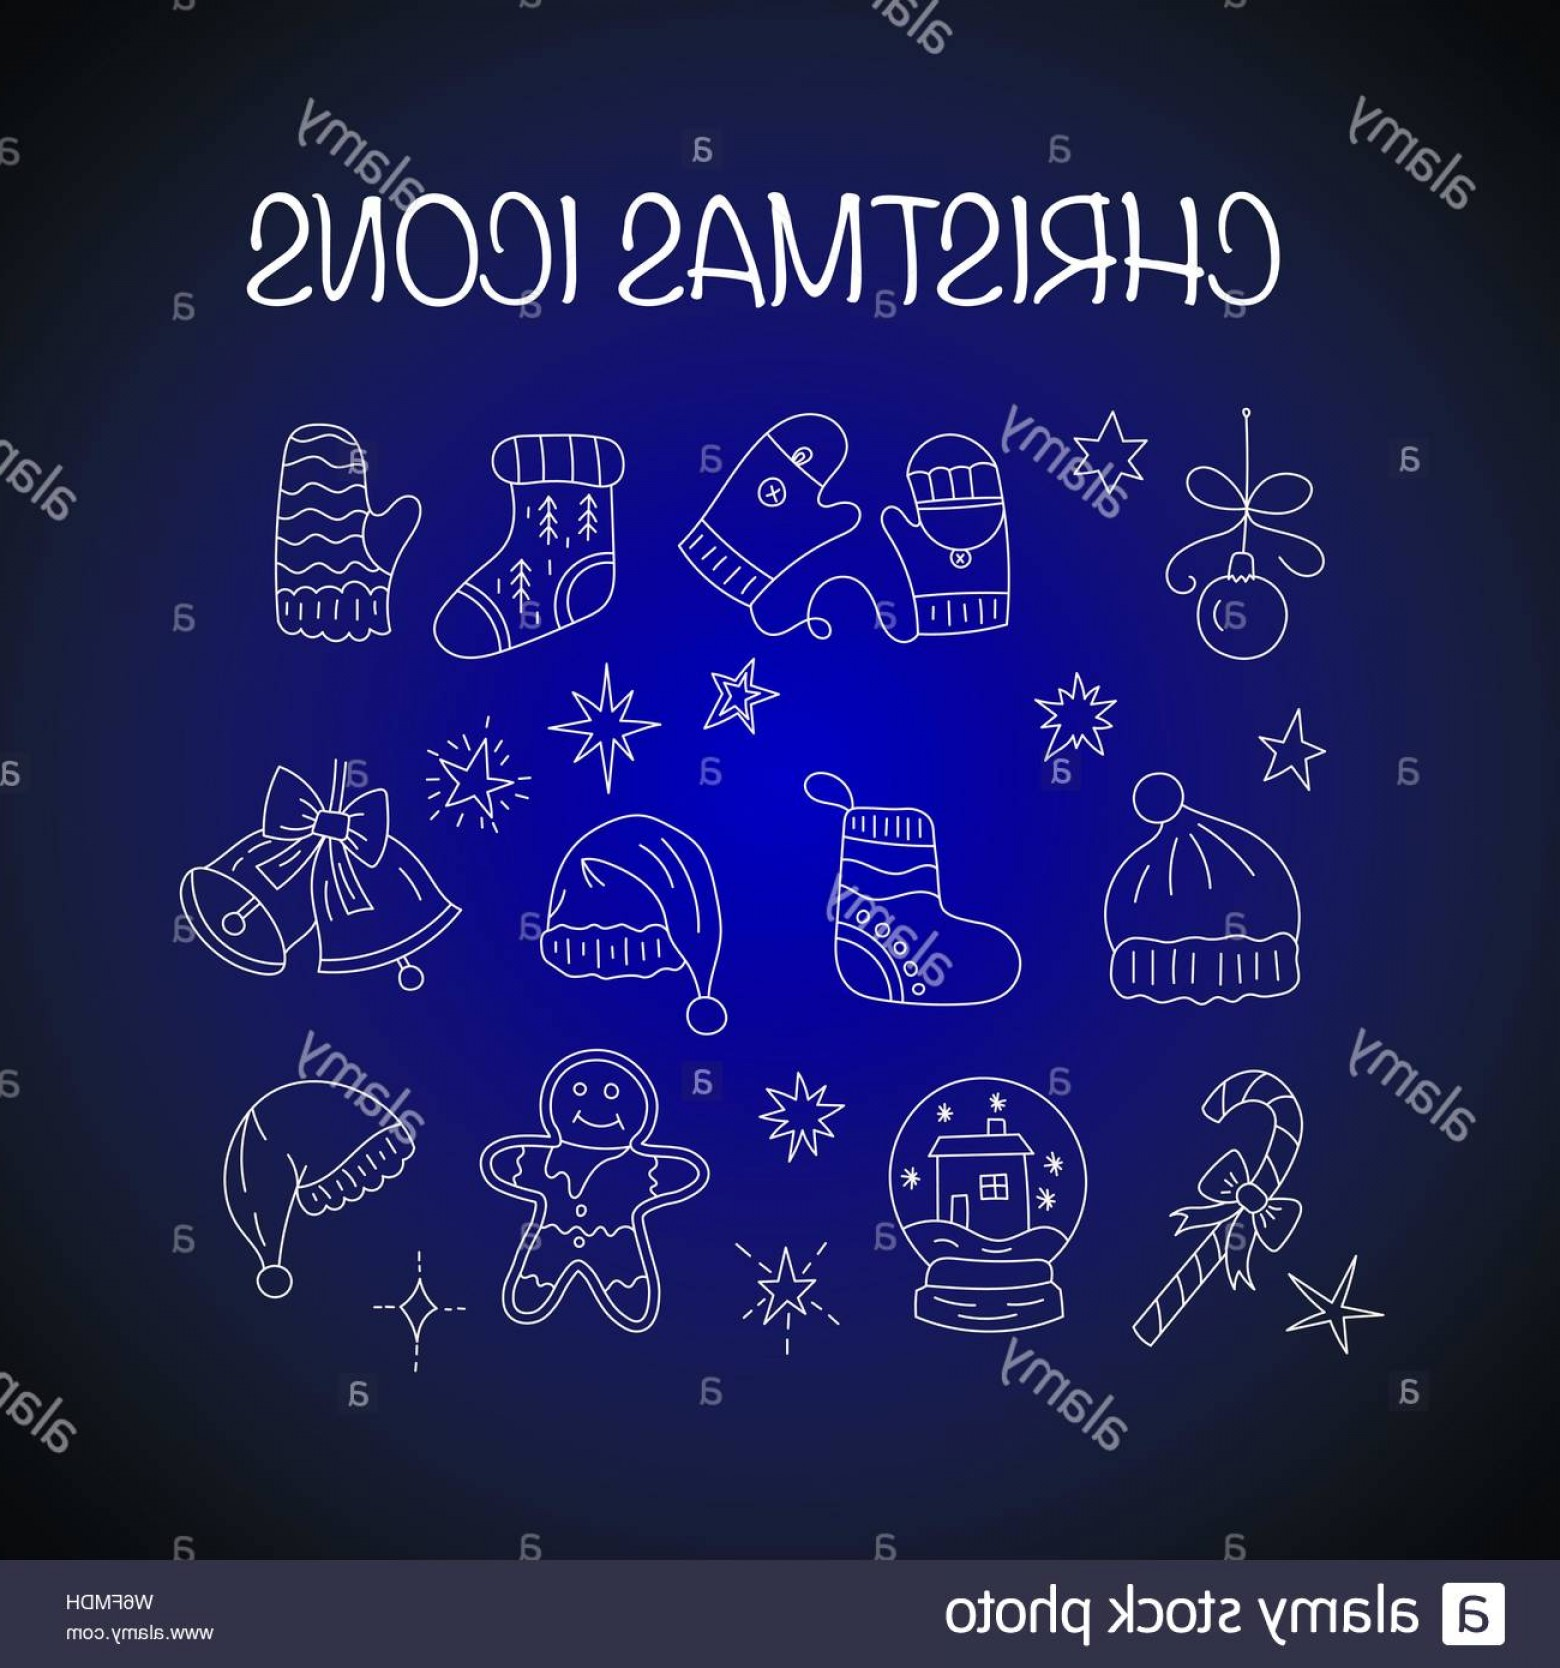 Snow Cone Outline Vector: Set Of Thin Line Outline Vector Christmas Icons Bell Biscuit Snow Glow Socks Snow Ball Hat Candy Ets Image